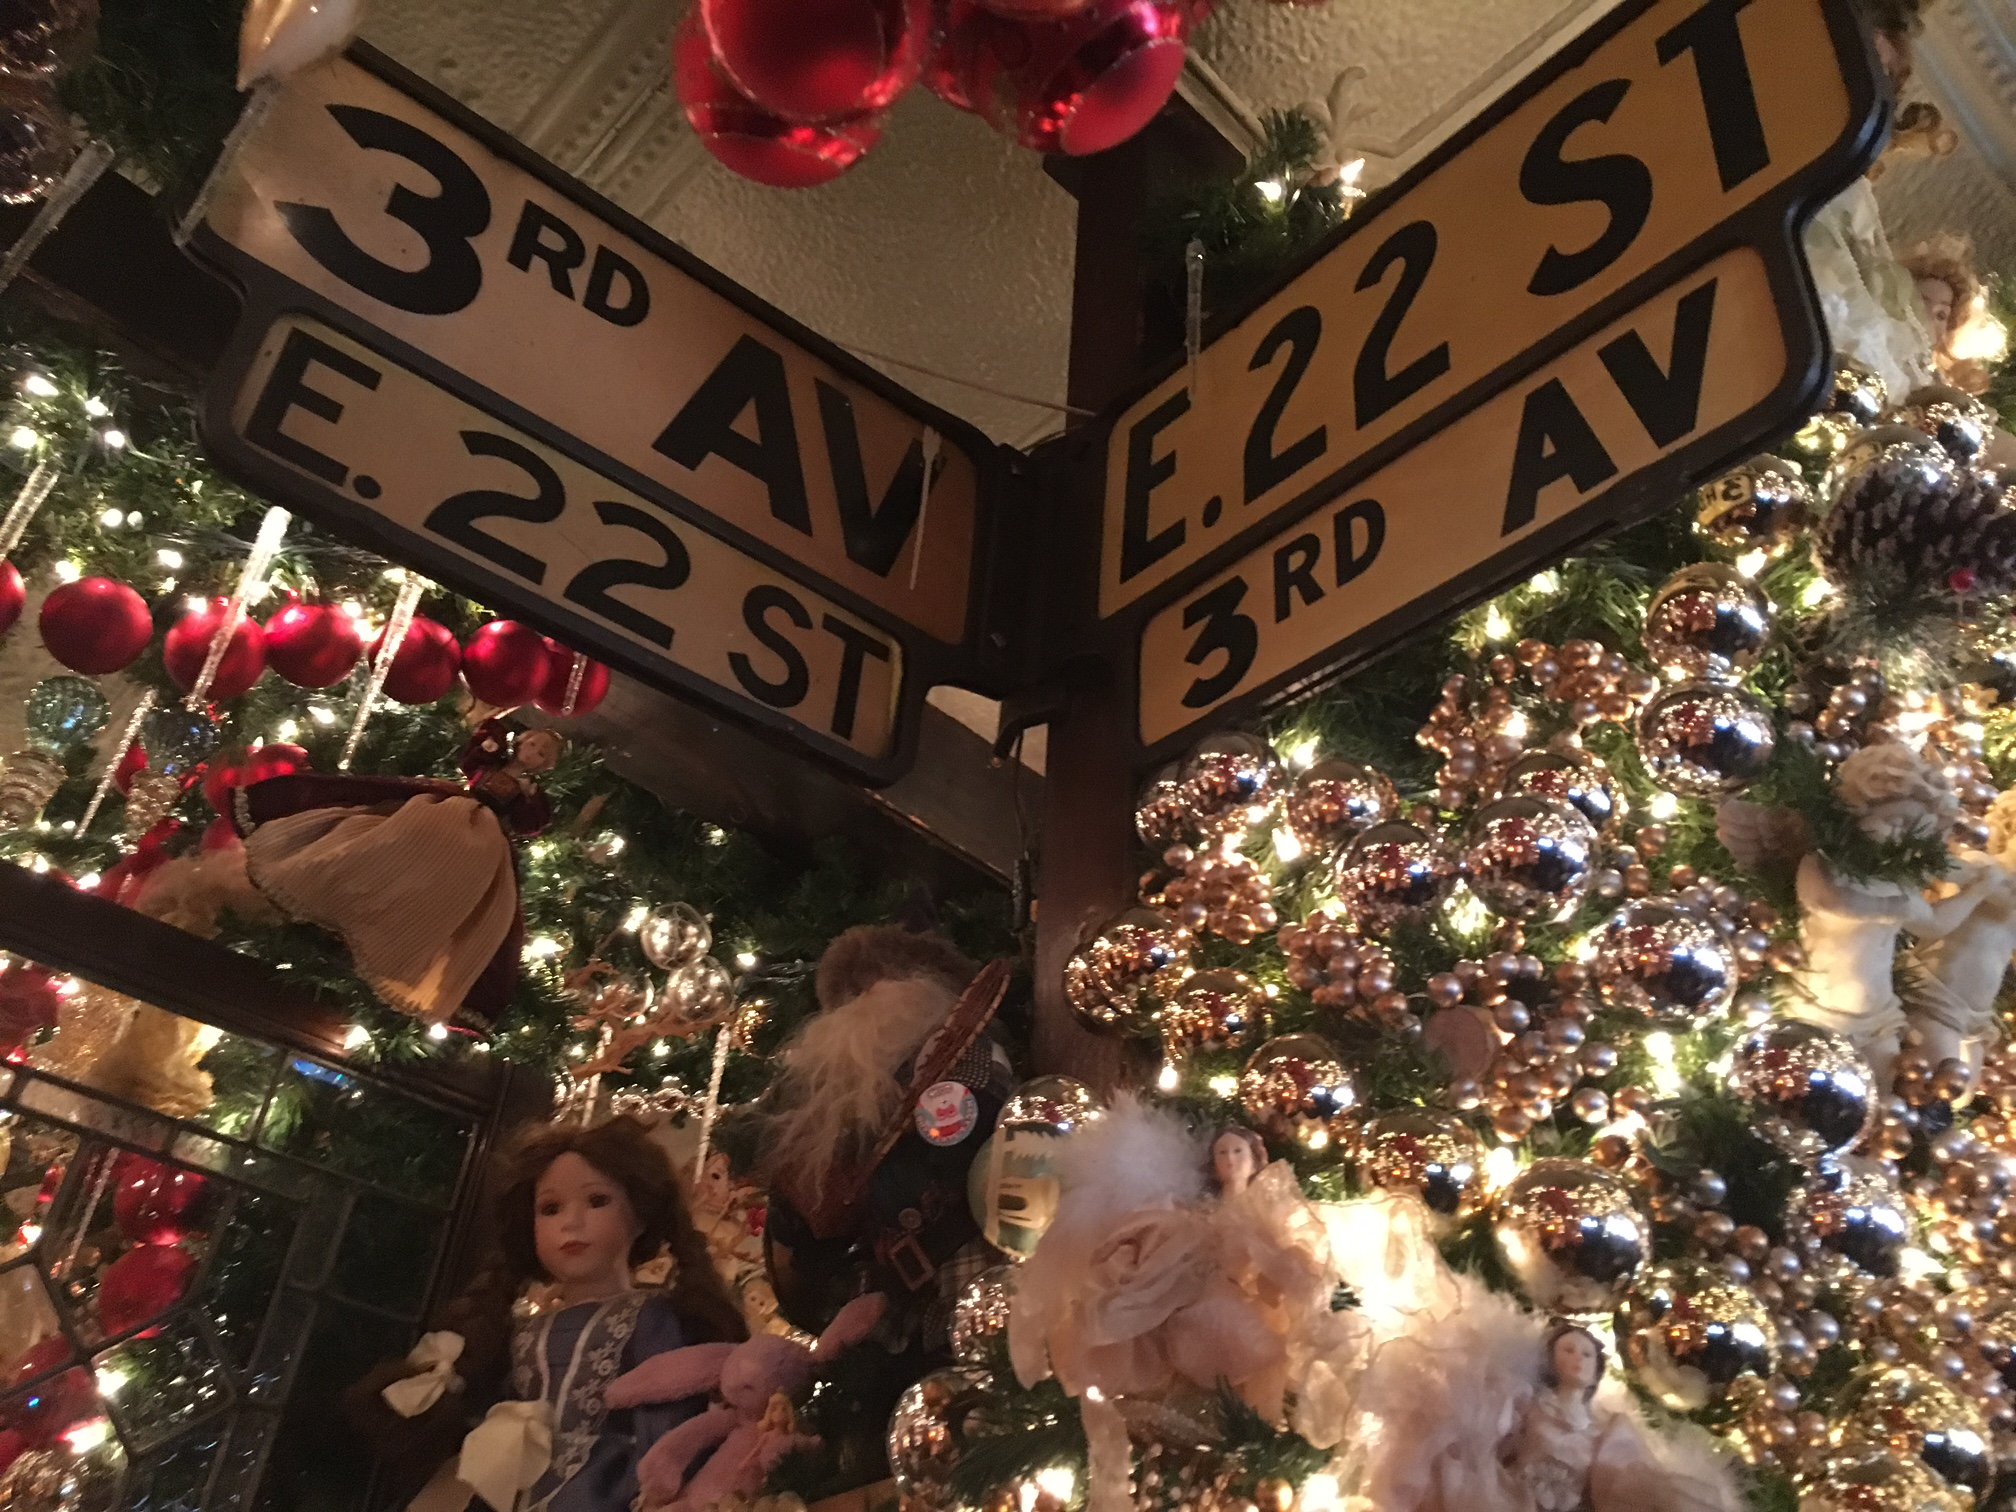 Rolfs Christmas Bar Nyc.The History Of Rolf S Christmas Crowd Pleaser Town Village